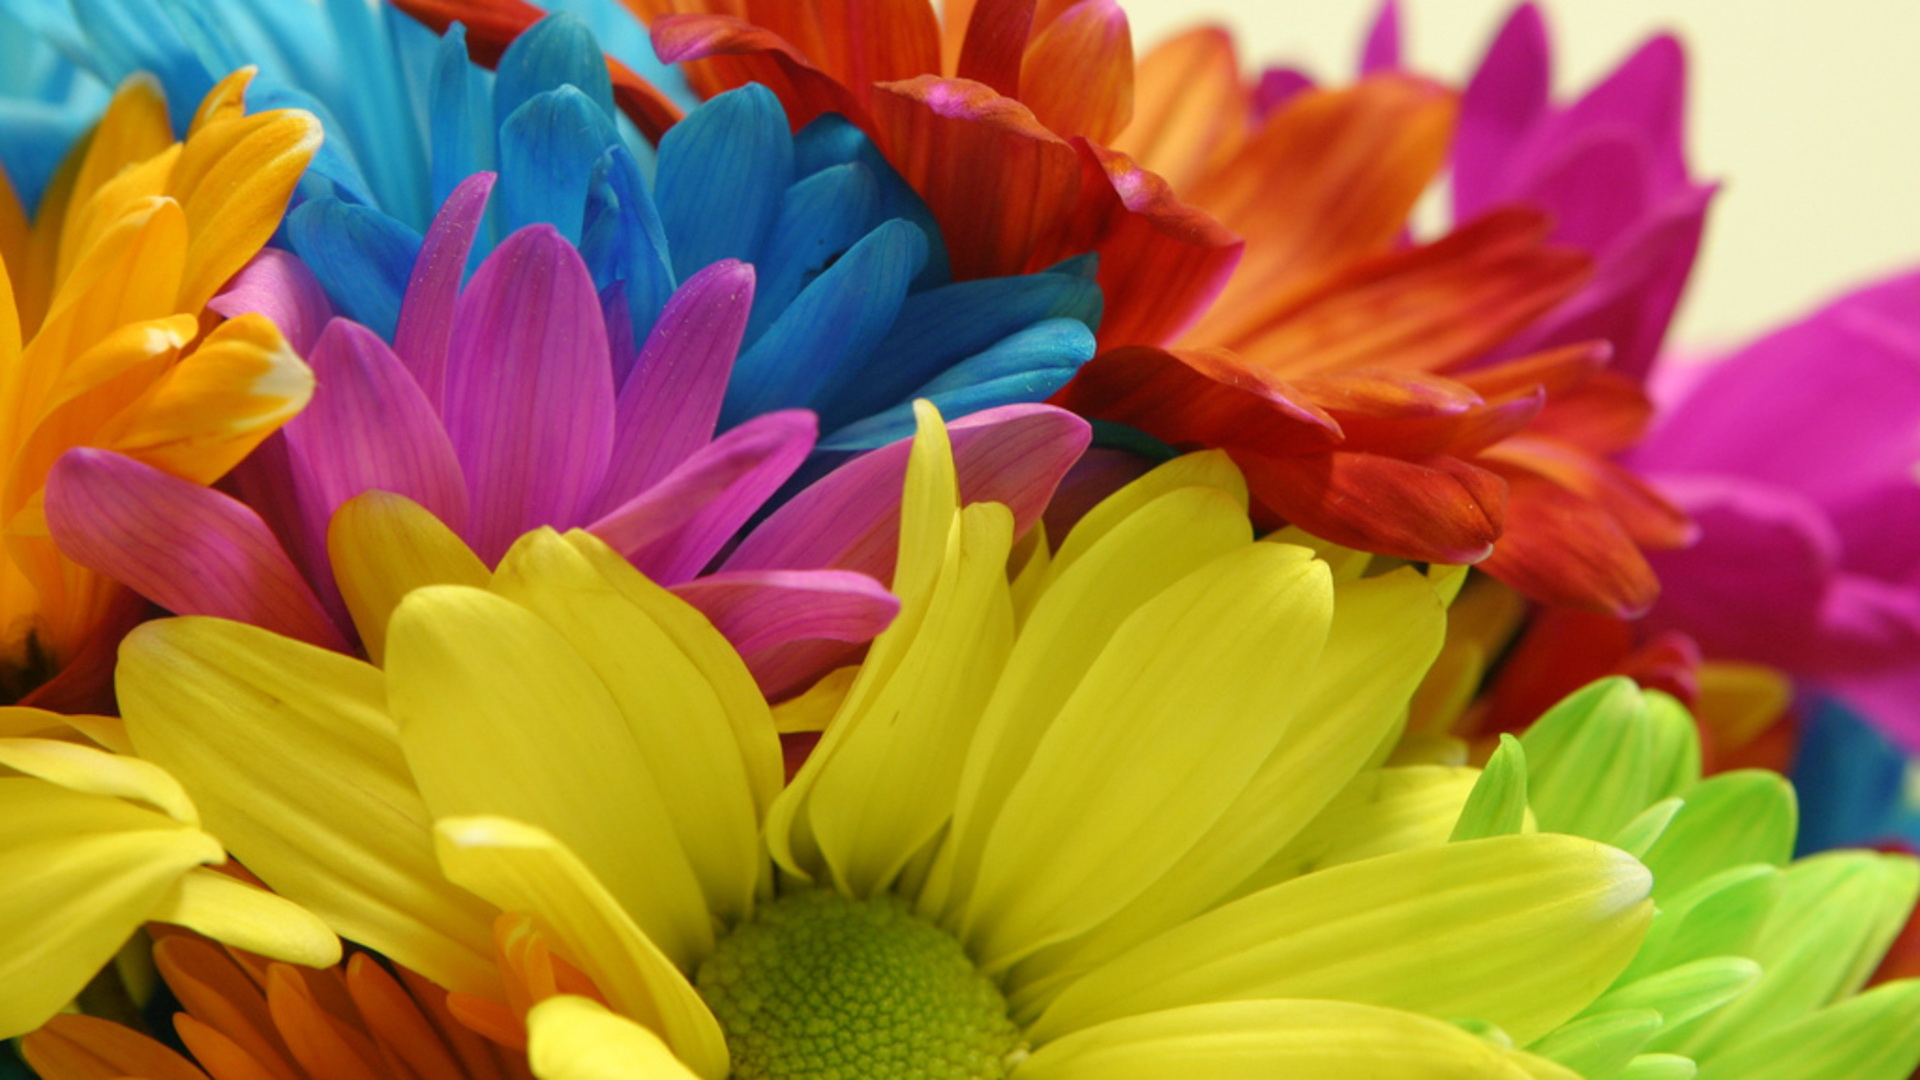 Colorful Flowers Wallpapers Hd Pixelstalk